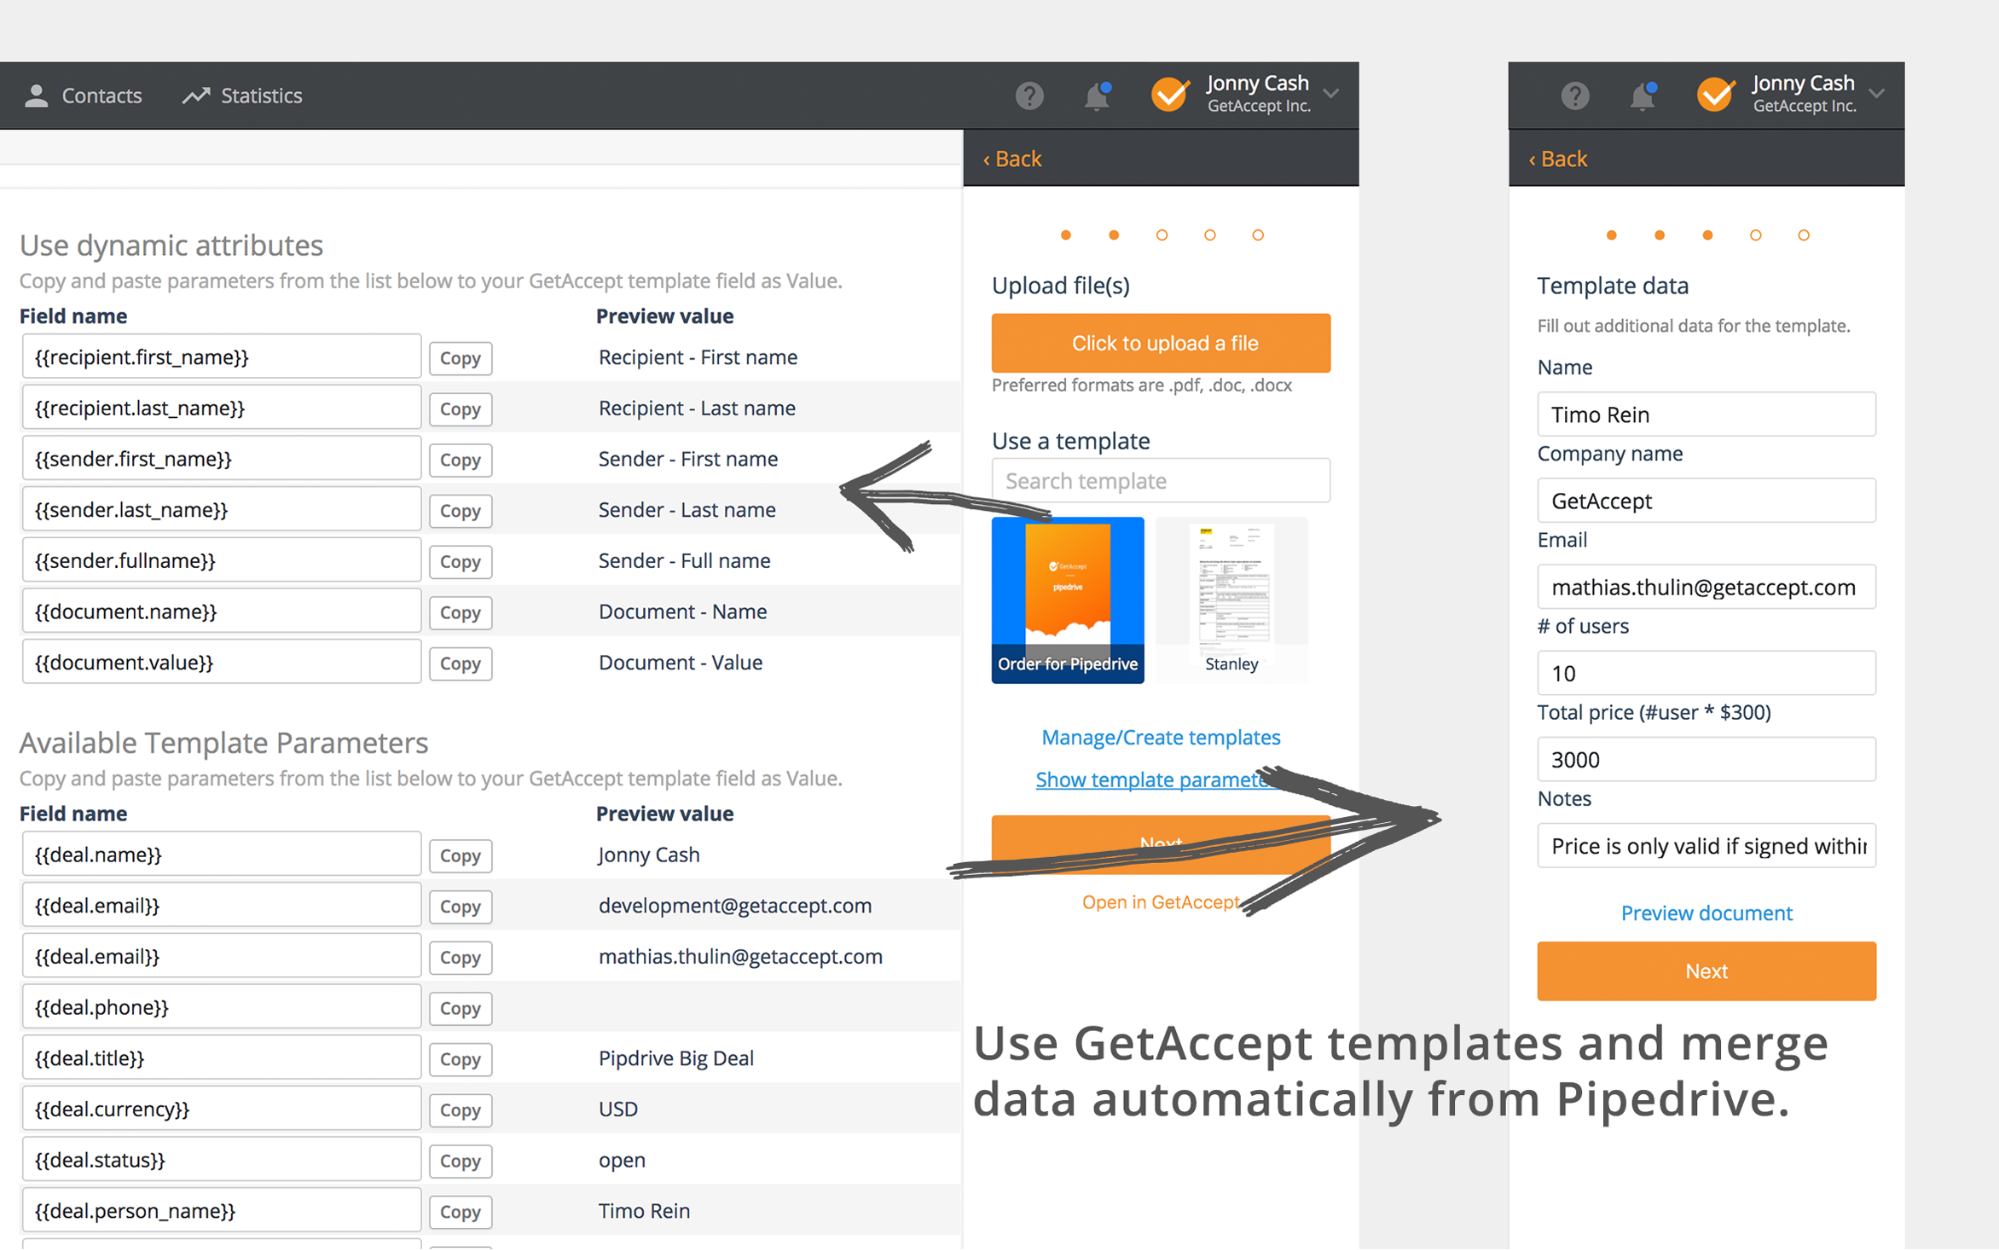 GetAccept and Pipedrive